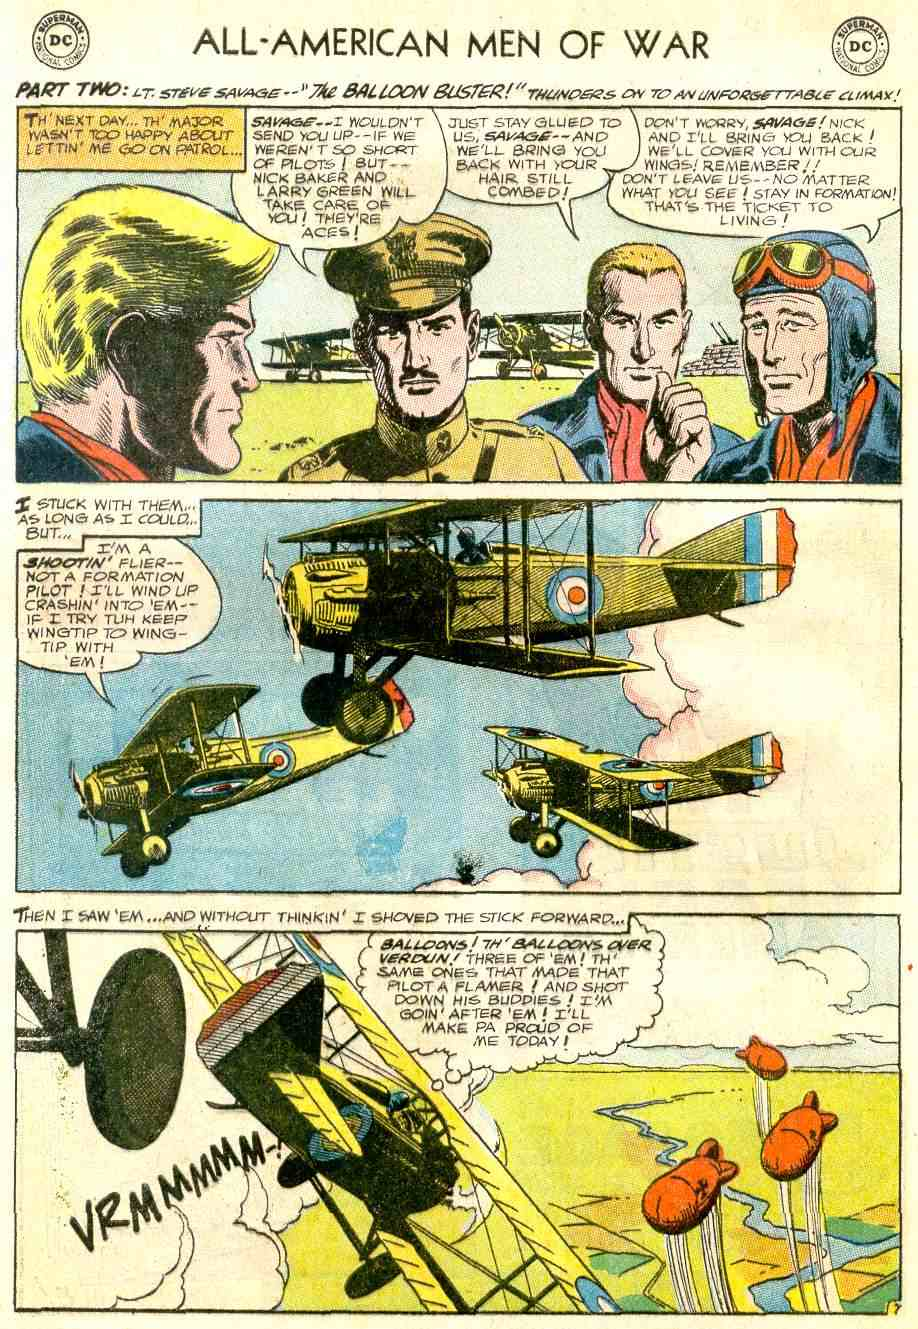 All-American Men of War #112 (Dec 1965) by Robert Kanigher and Russ Heath